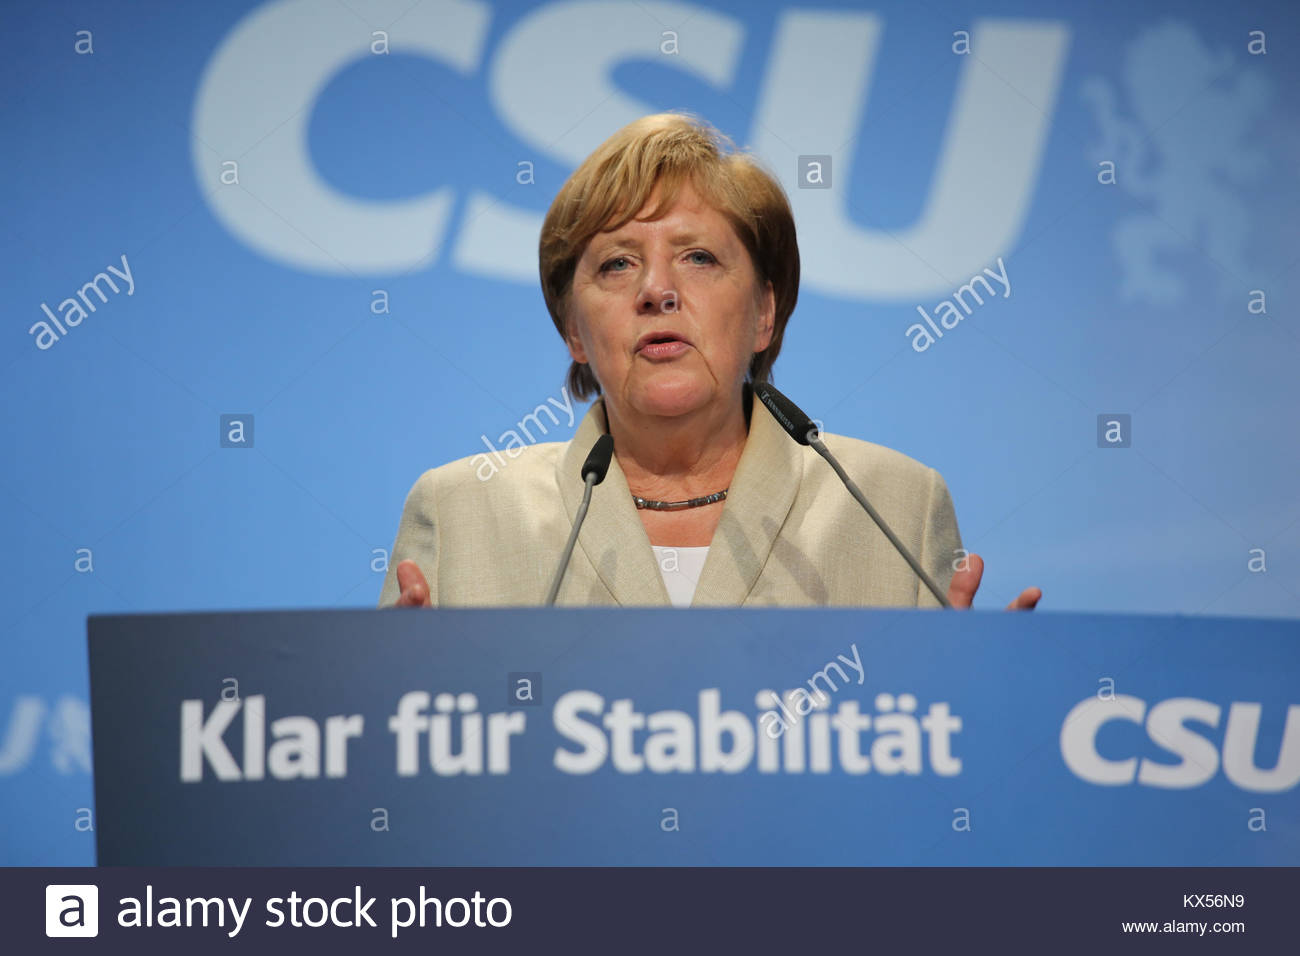 30 August 2017. Erlangen, Germany. Angel Merkel speaks at an election rally held by the CSU party, Bavaria's - Stock Image